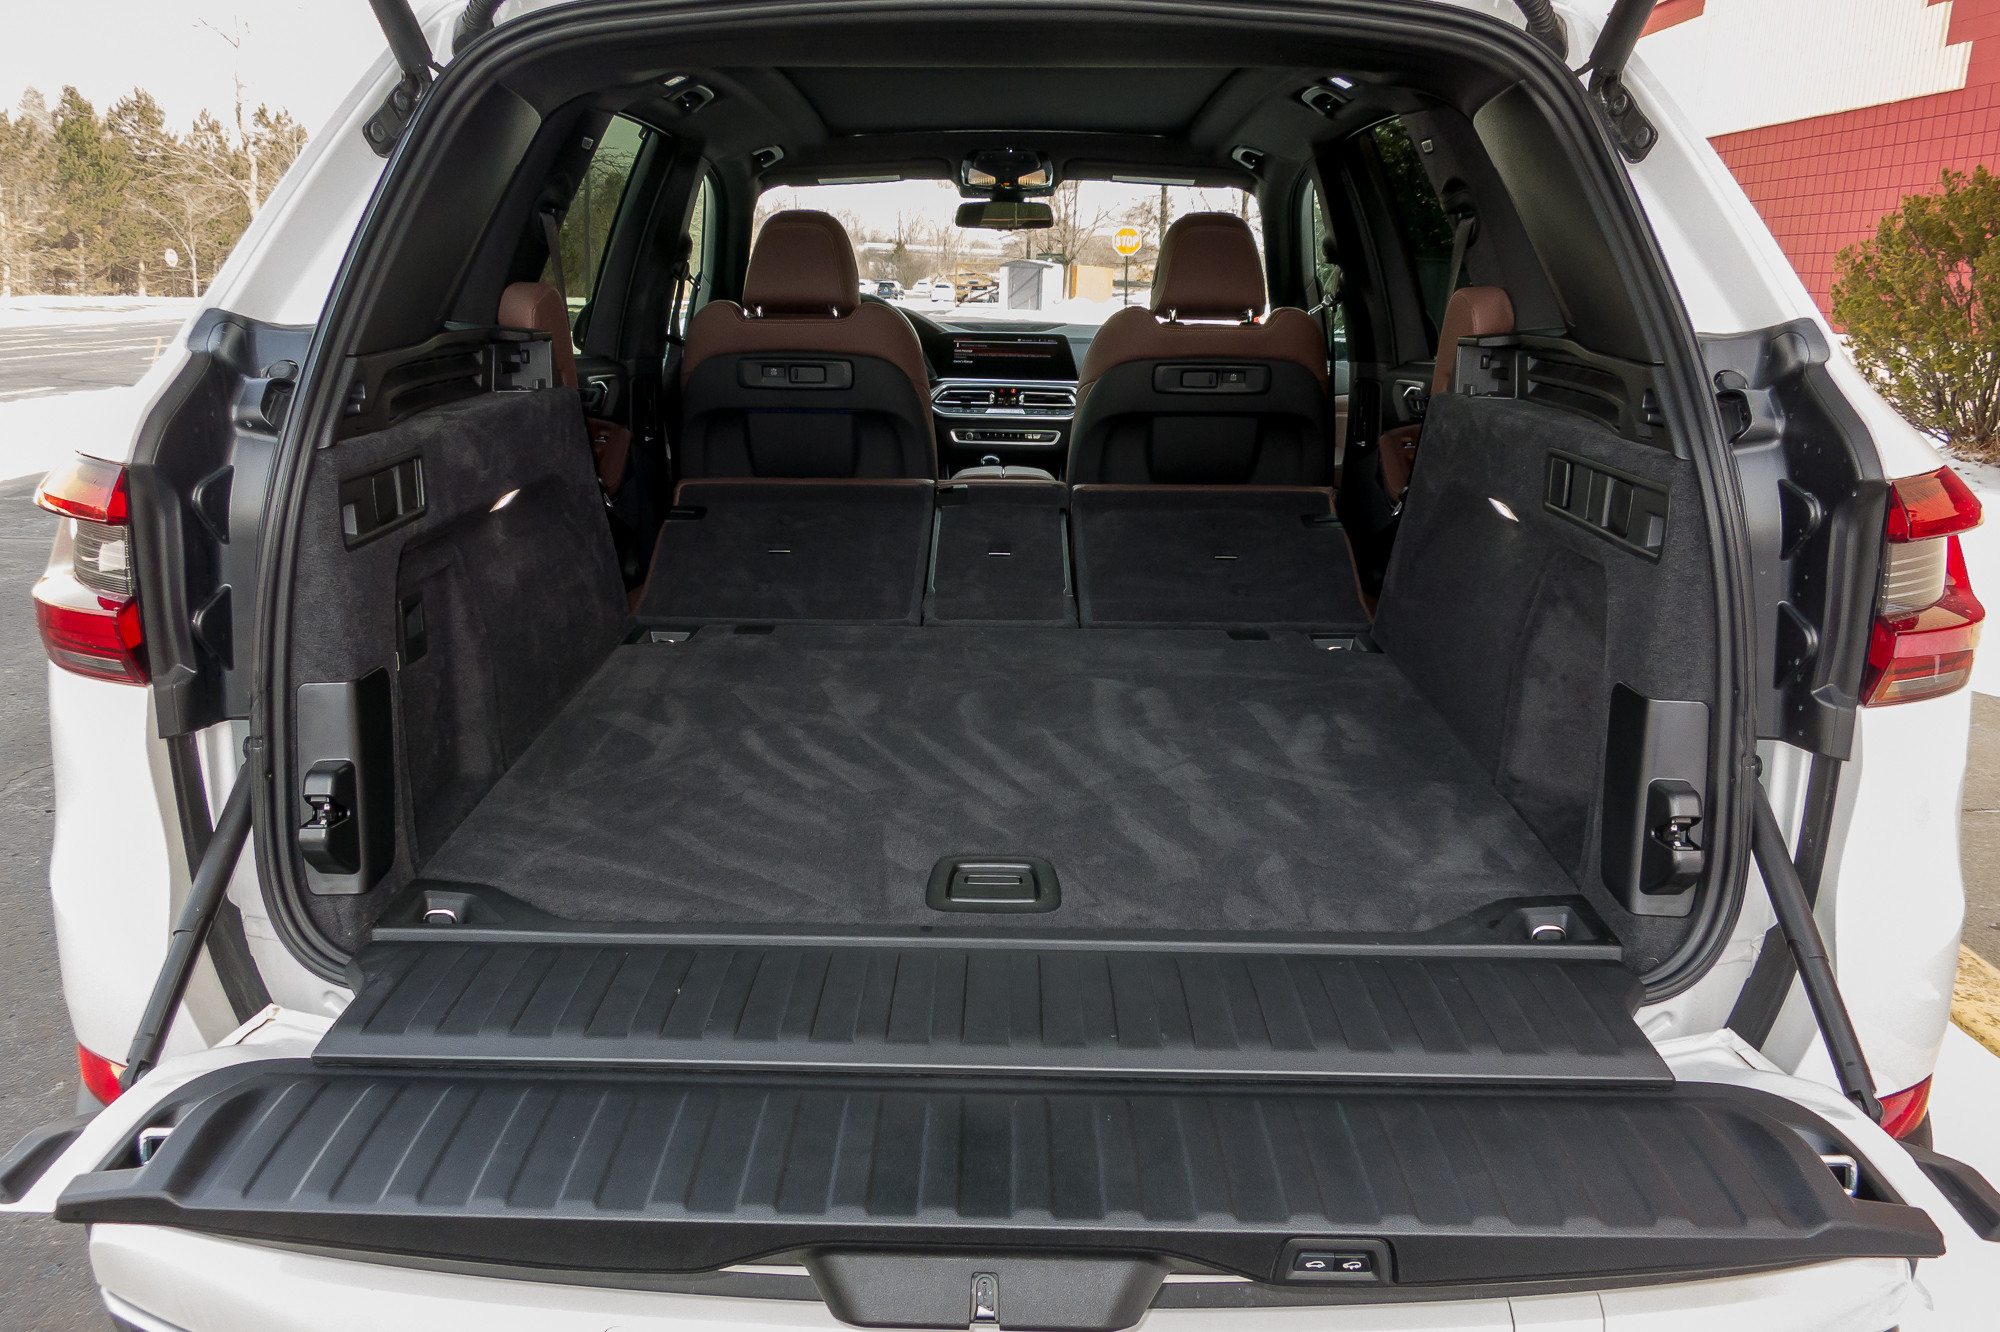 32-bmw-x5-2019-folding-seats--interior--trunk.jpg